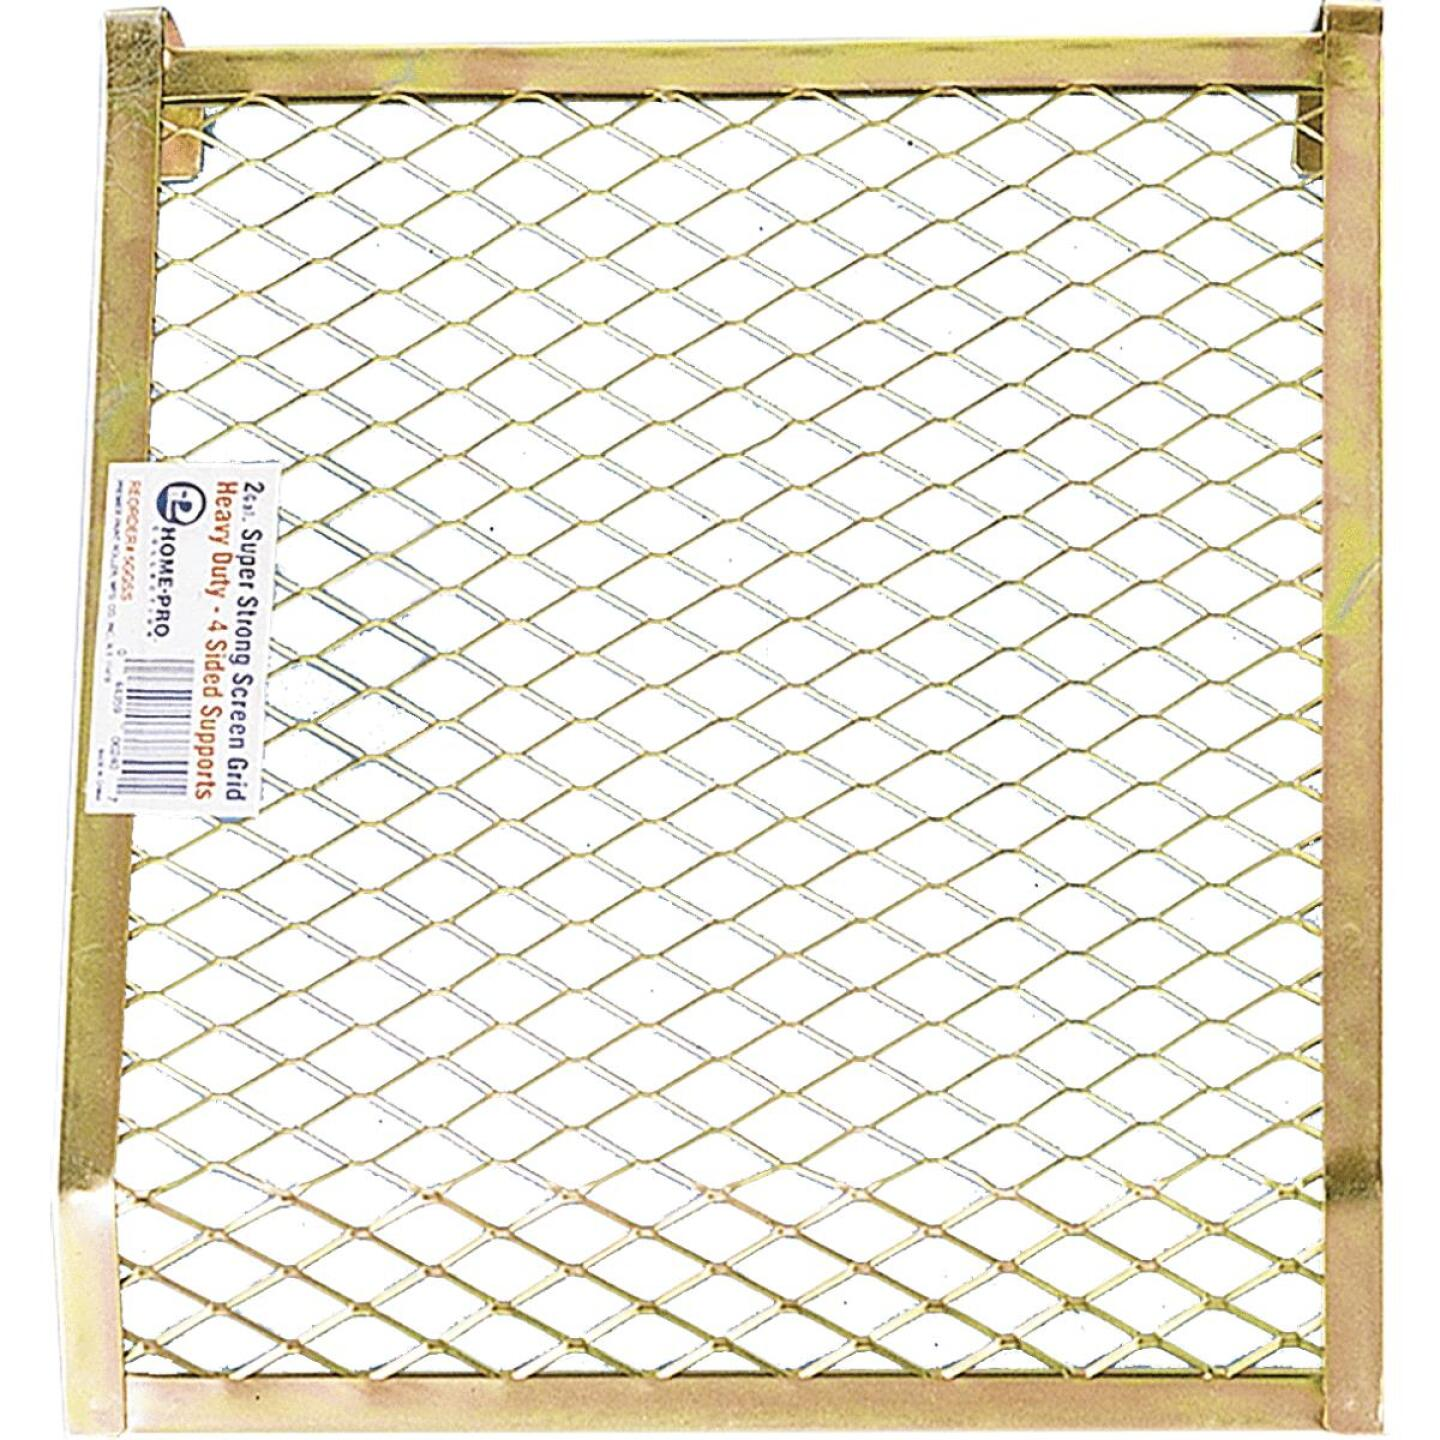 Premier 2 Gallon Metal Paint Roller Grid Image 1